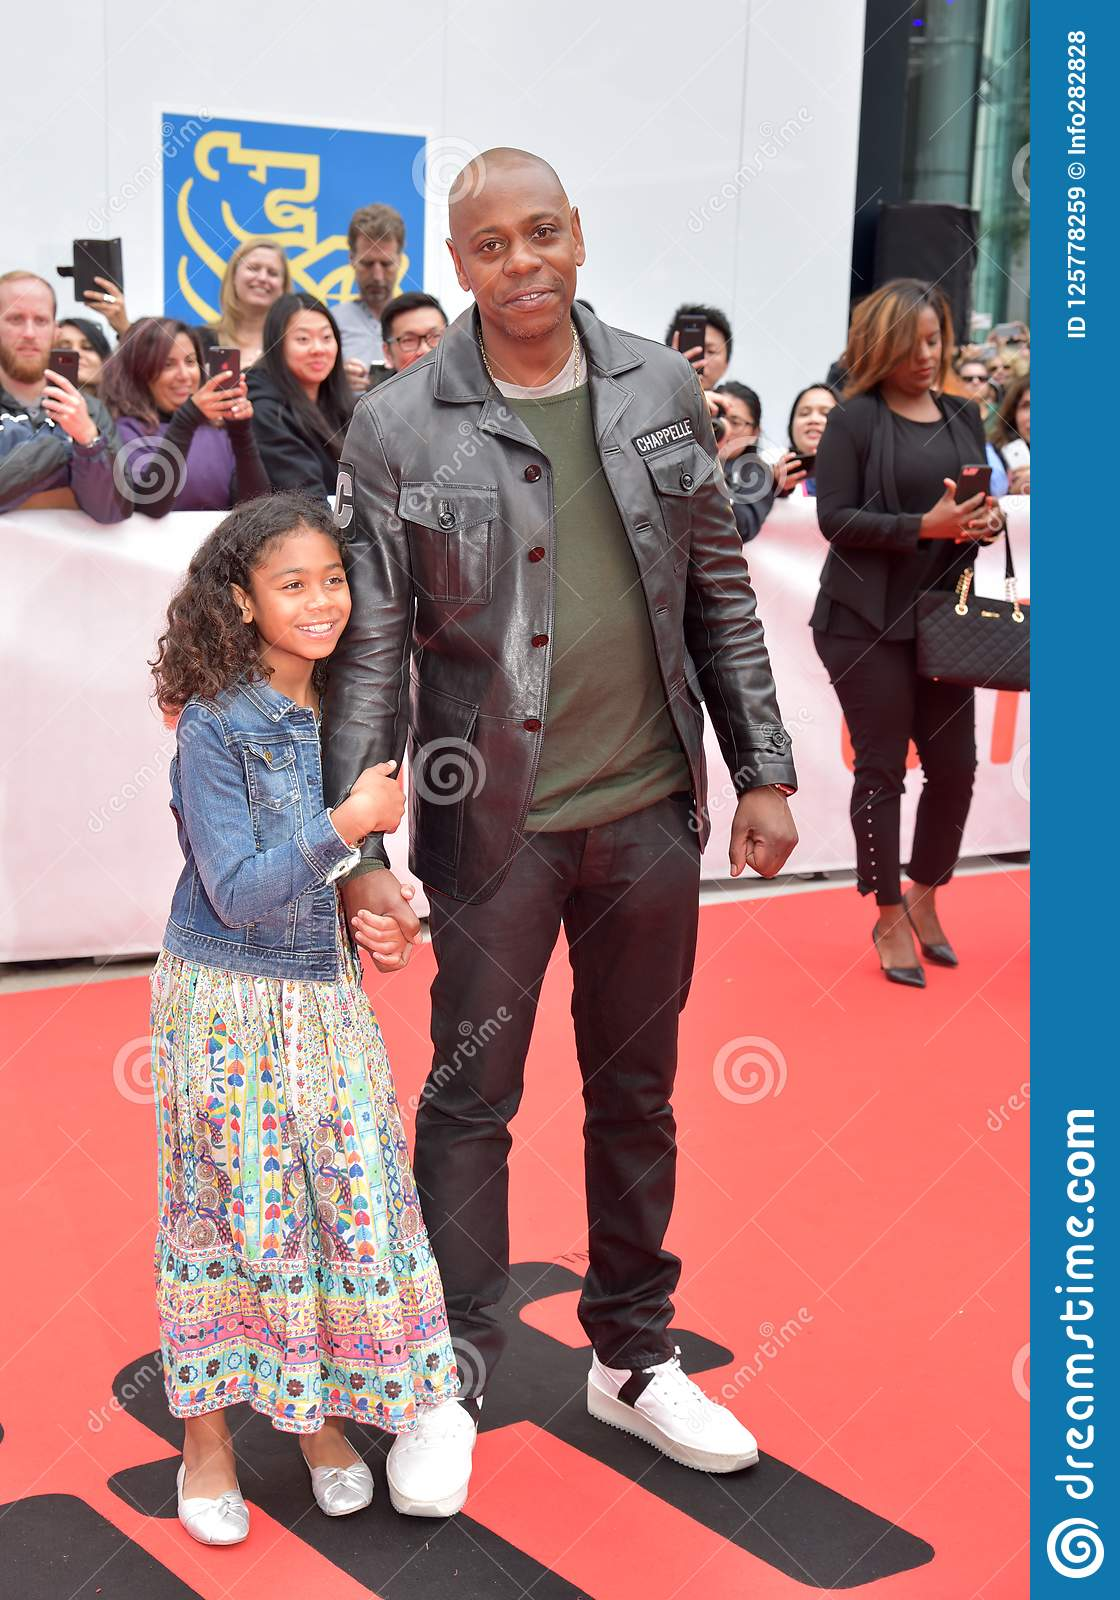 dave chappelle and his daughter at premiere of a star is born at toronto international film festival 2018 editorial stock image image of born lady 125778259 https www dreamstime com actor comedian dave chappelle premiere star born toronto international film festival roy thomson hall talent films image125778259